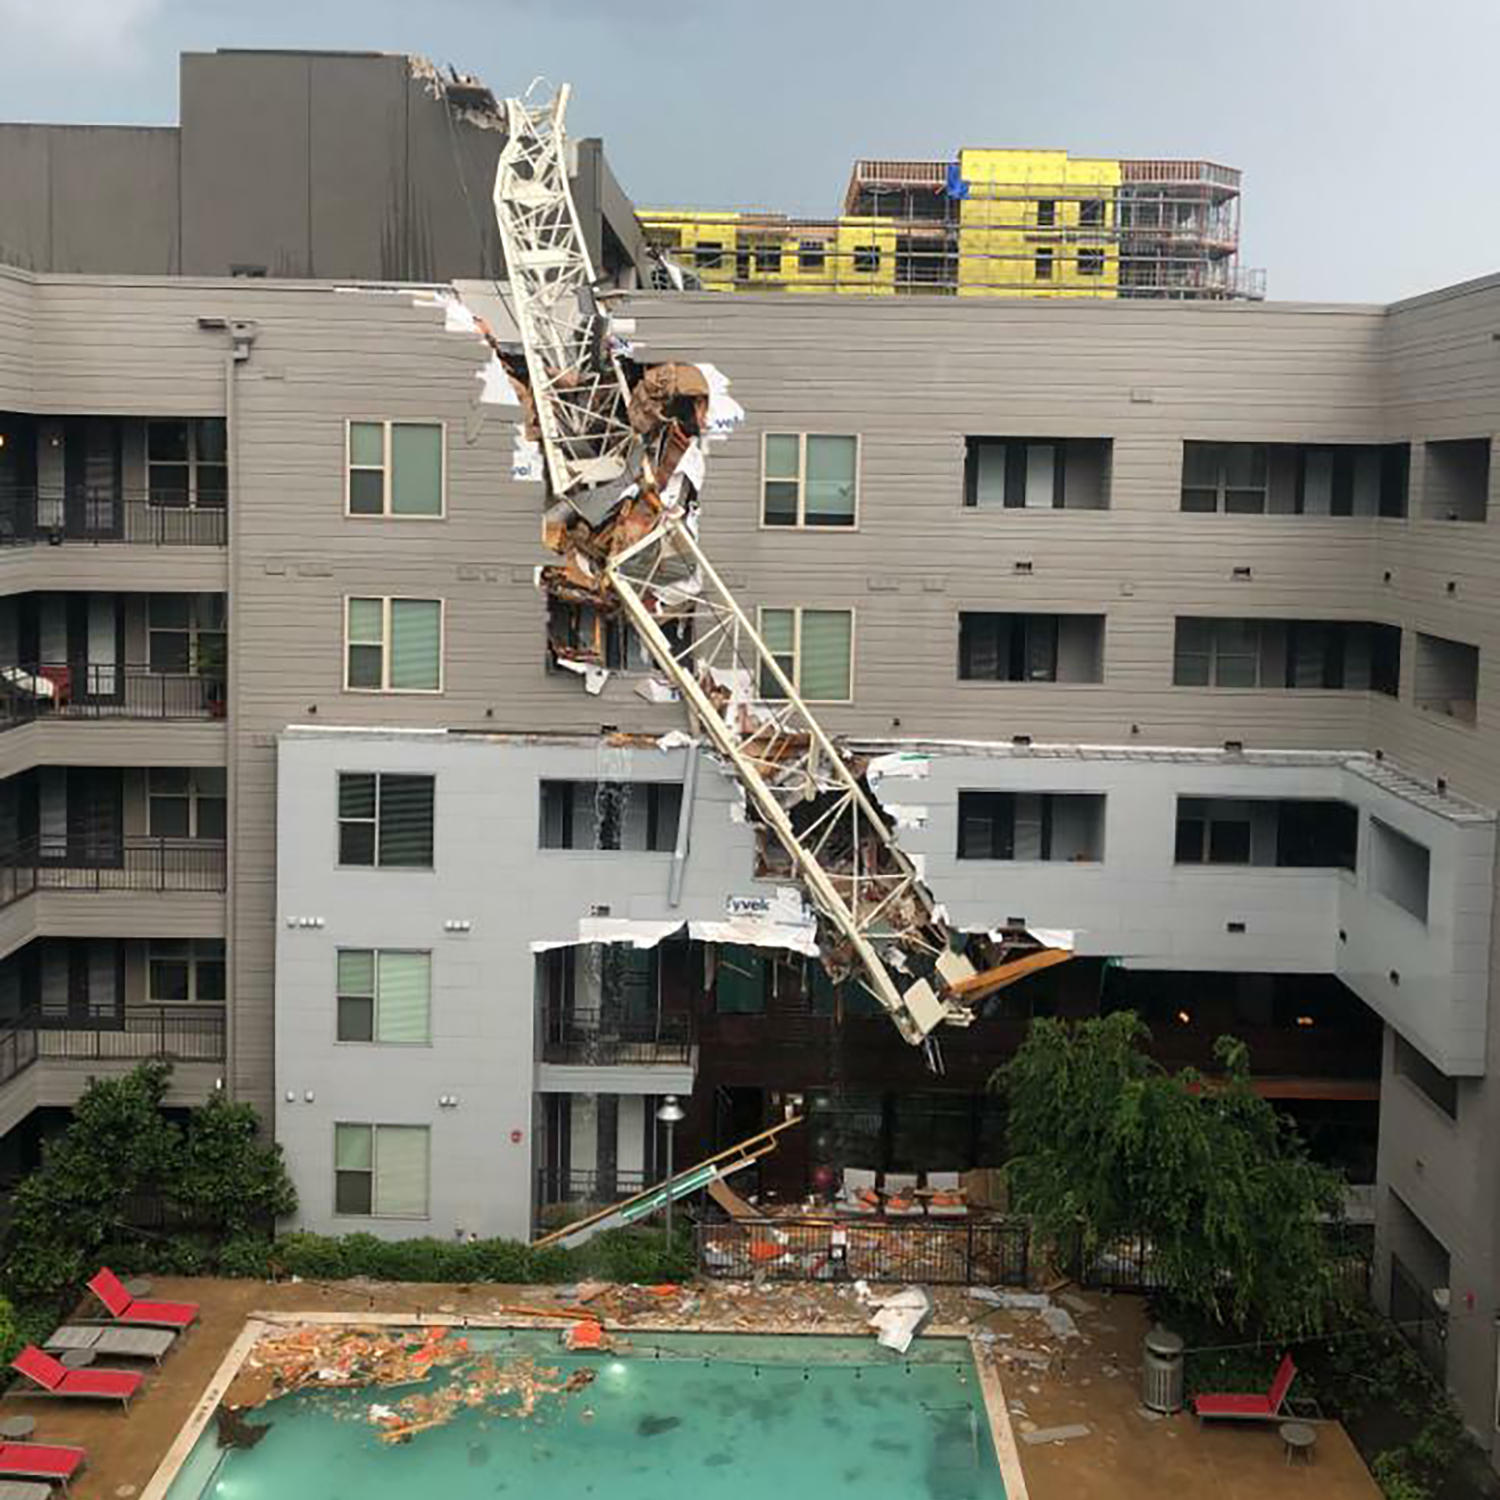 Crane Collapses In High Winds, Smashing Through Dallas